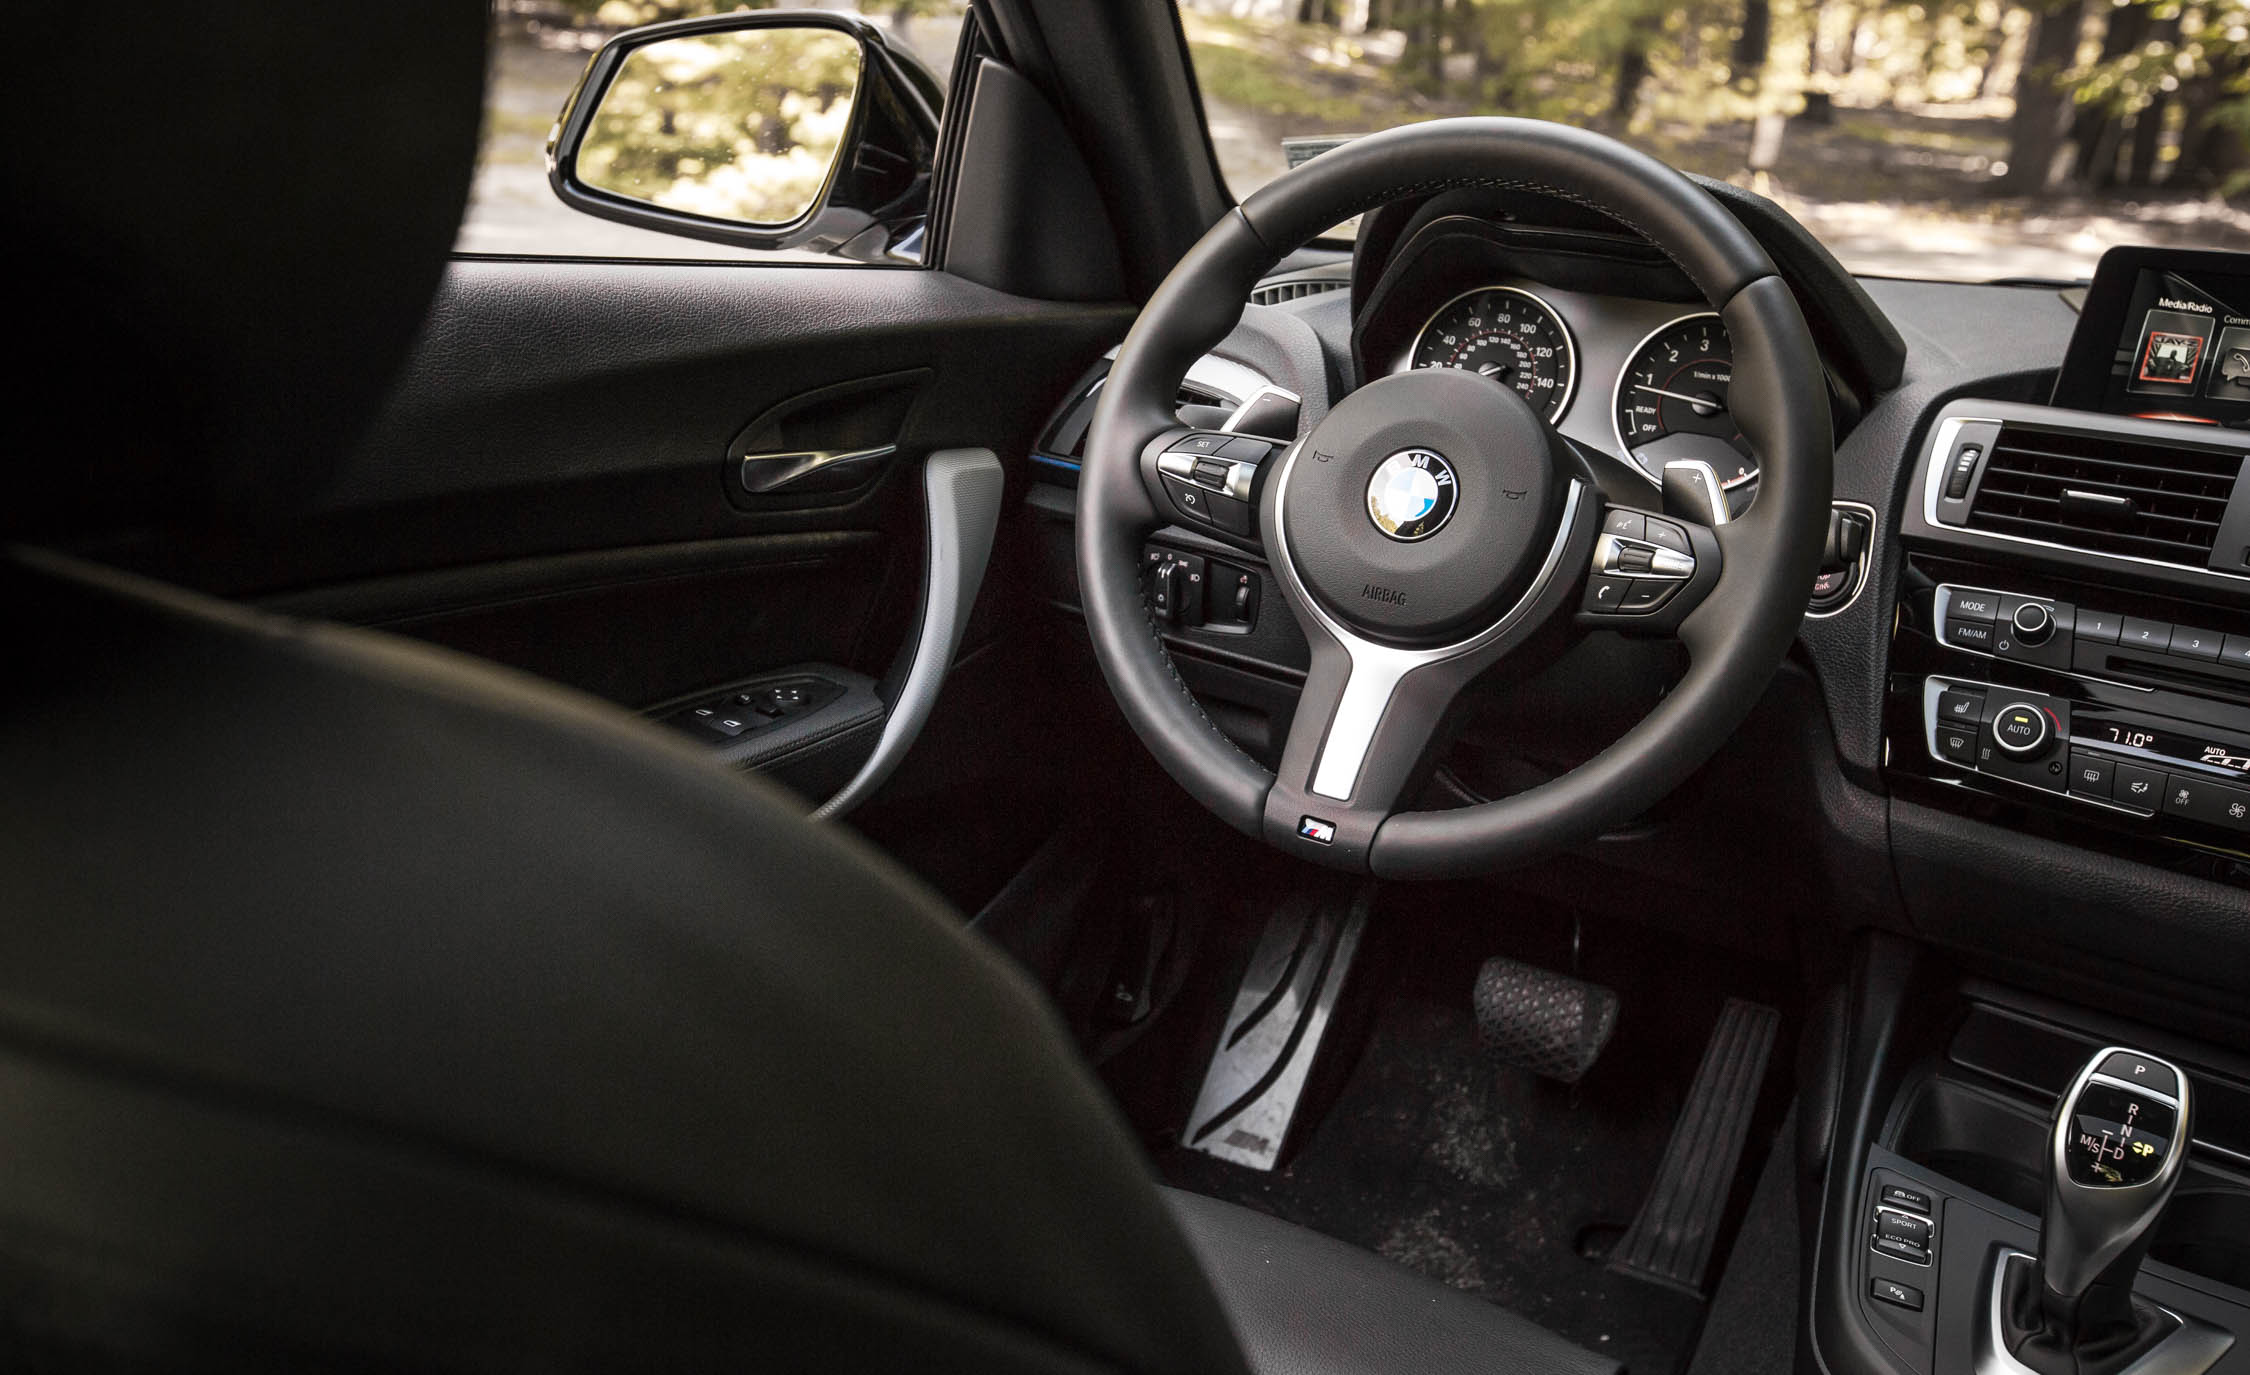 2017 BMW M240i Coupe Automatic Interior Driver Cockpit (Photo 22 of 36)